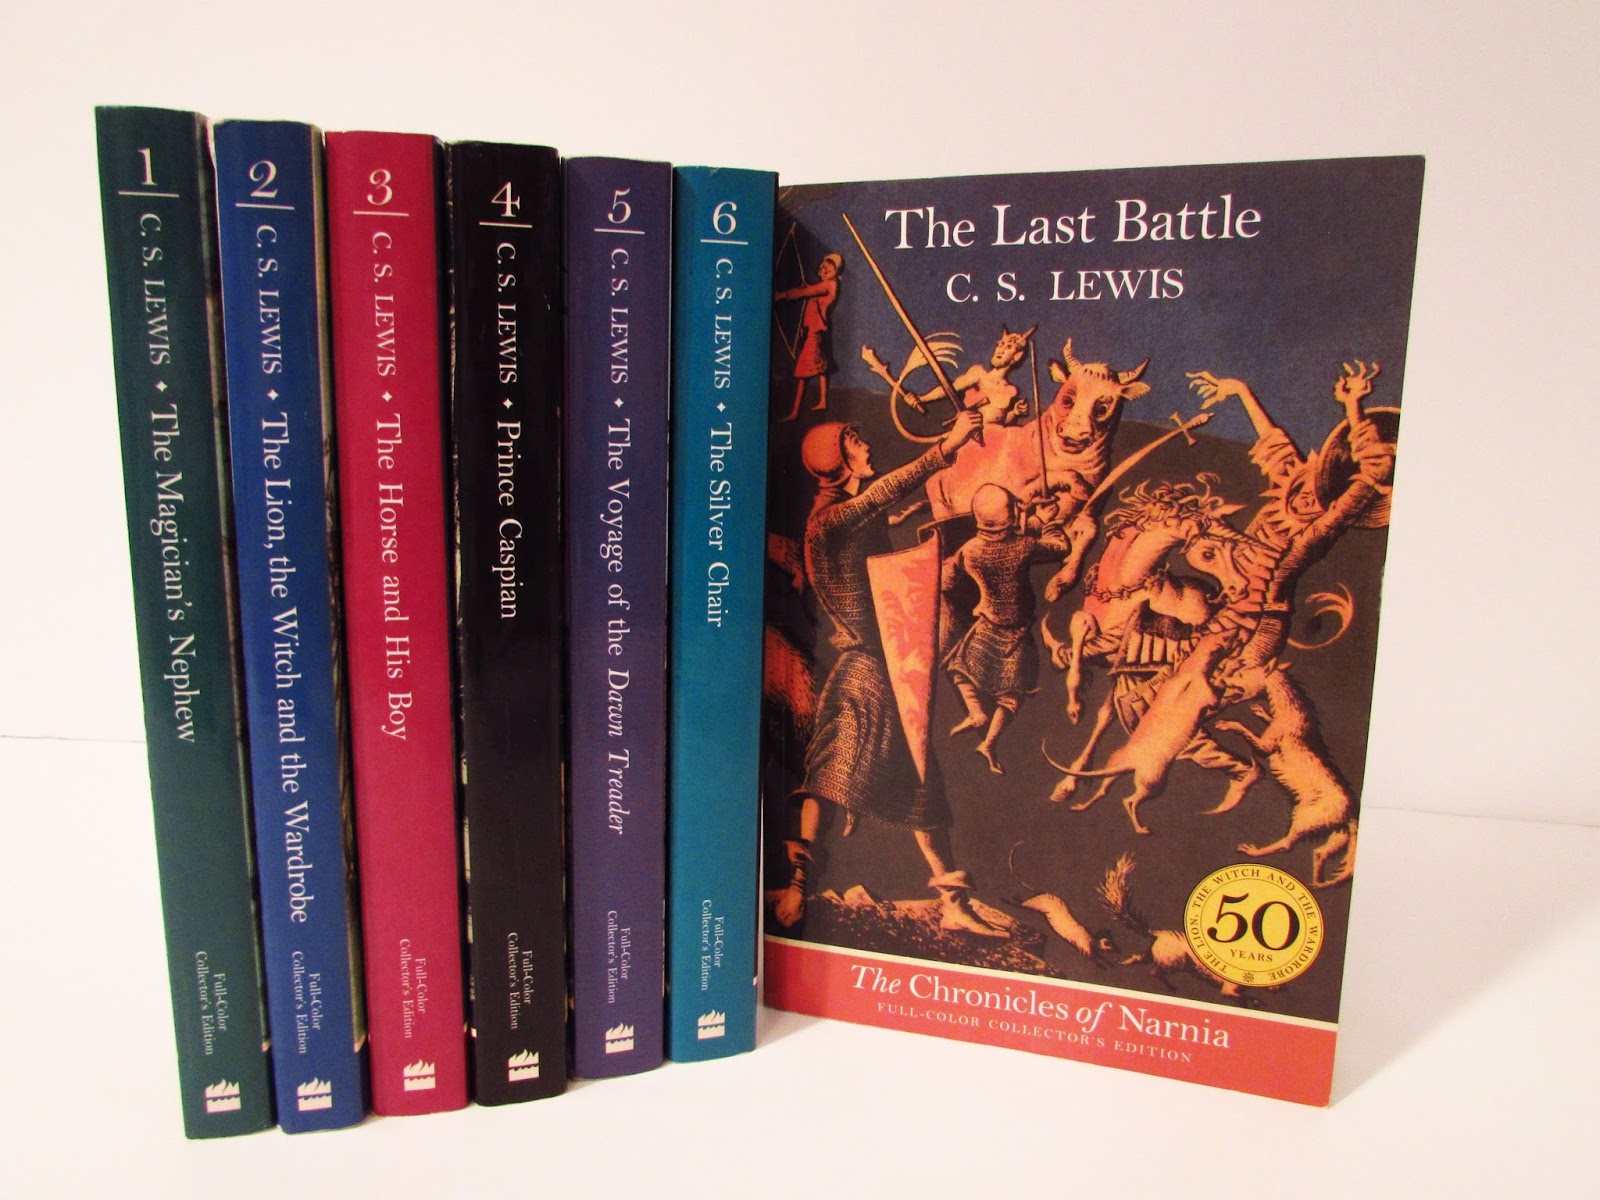 The narnia covers book 4 the silver chair - How Do You View The Last Battle What Are Your Favorite Moments And Quotes And Characters In It How Does It Compare To The Other Narnia Books For You